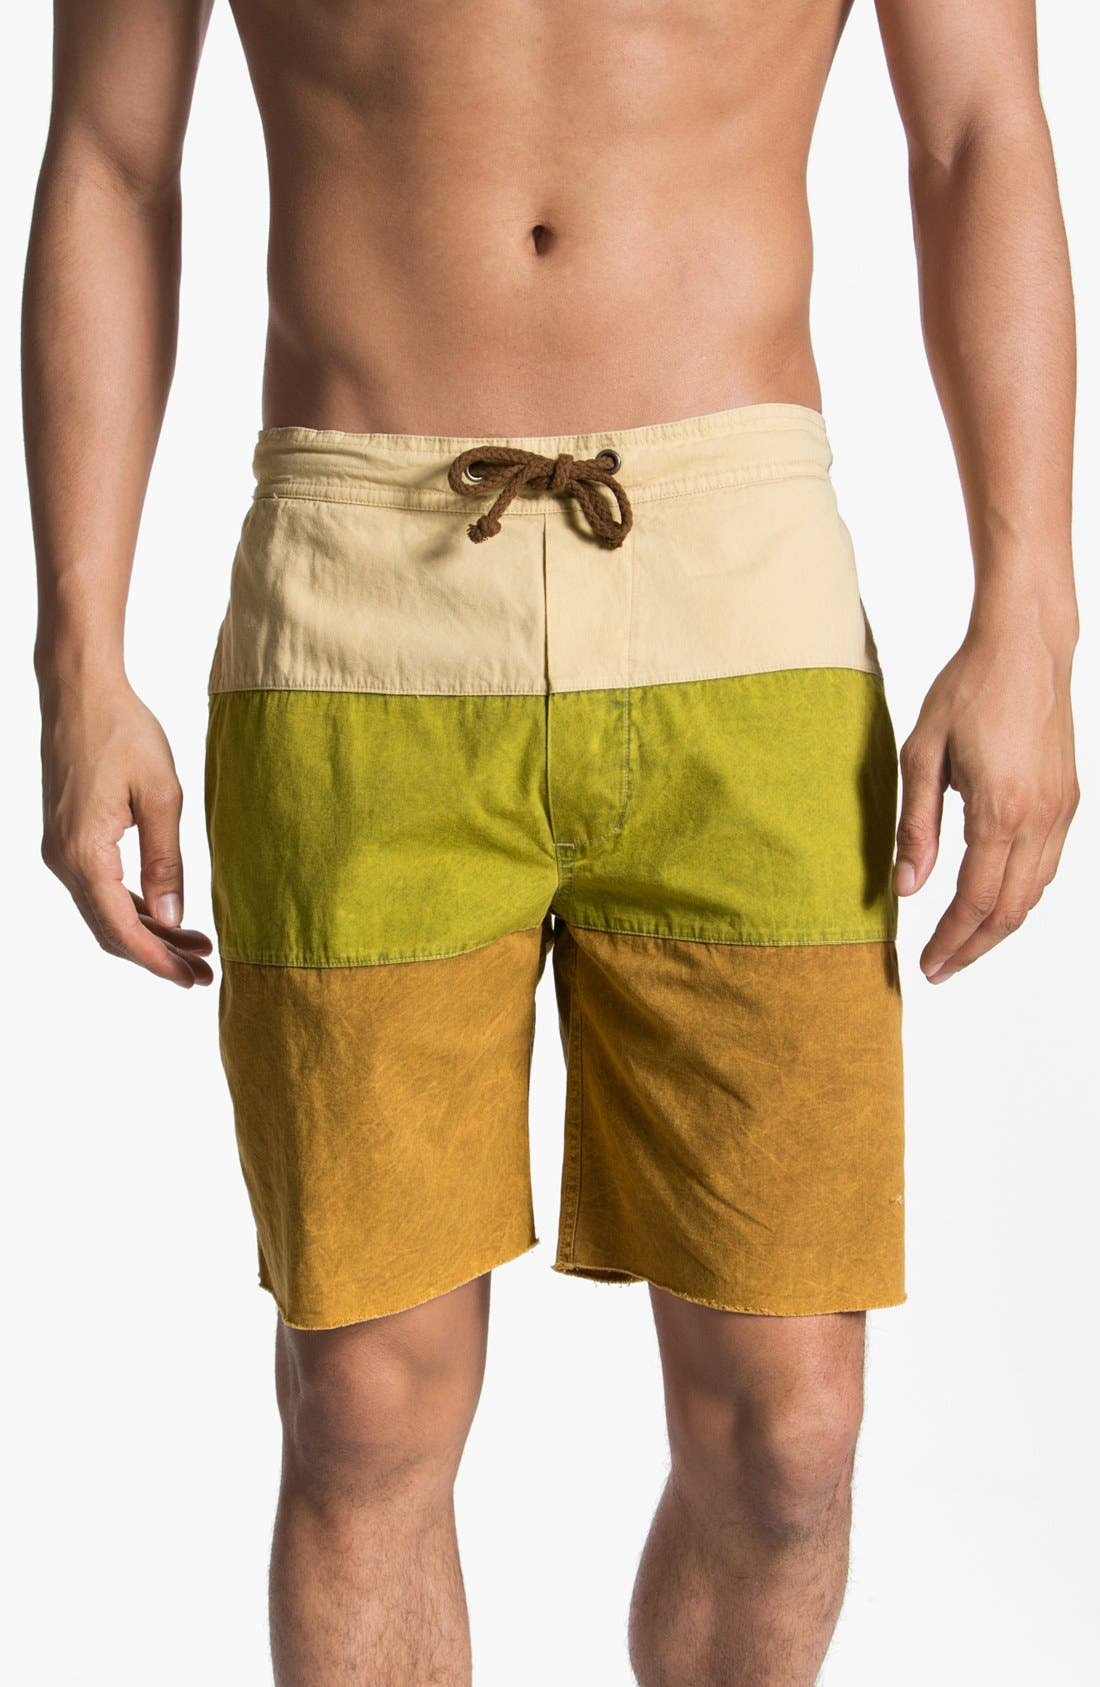 Alternate Image 1 Selected - Vanguard '3 Way Fusion' Swim Trunks